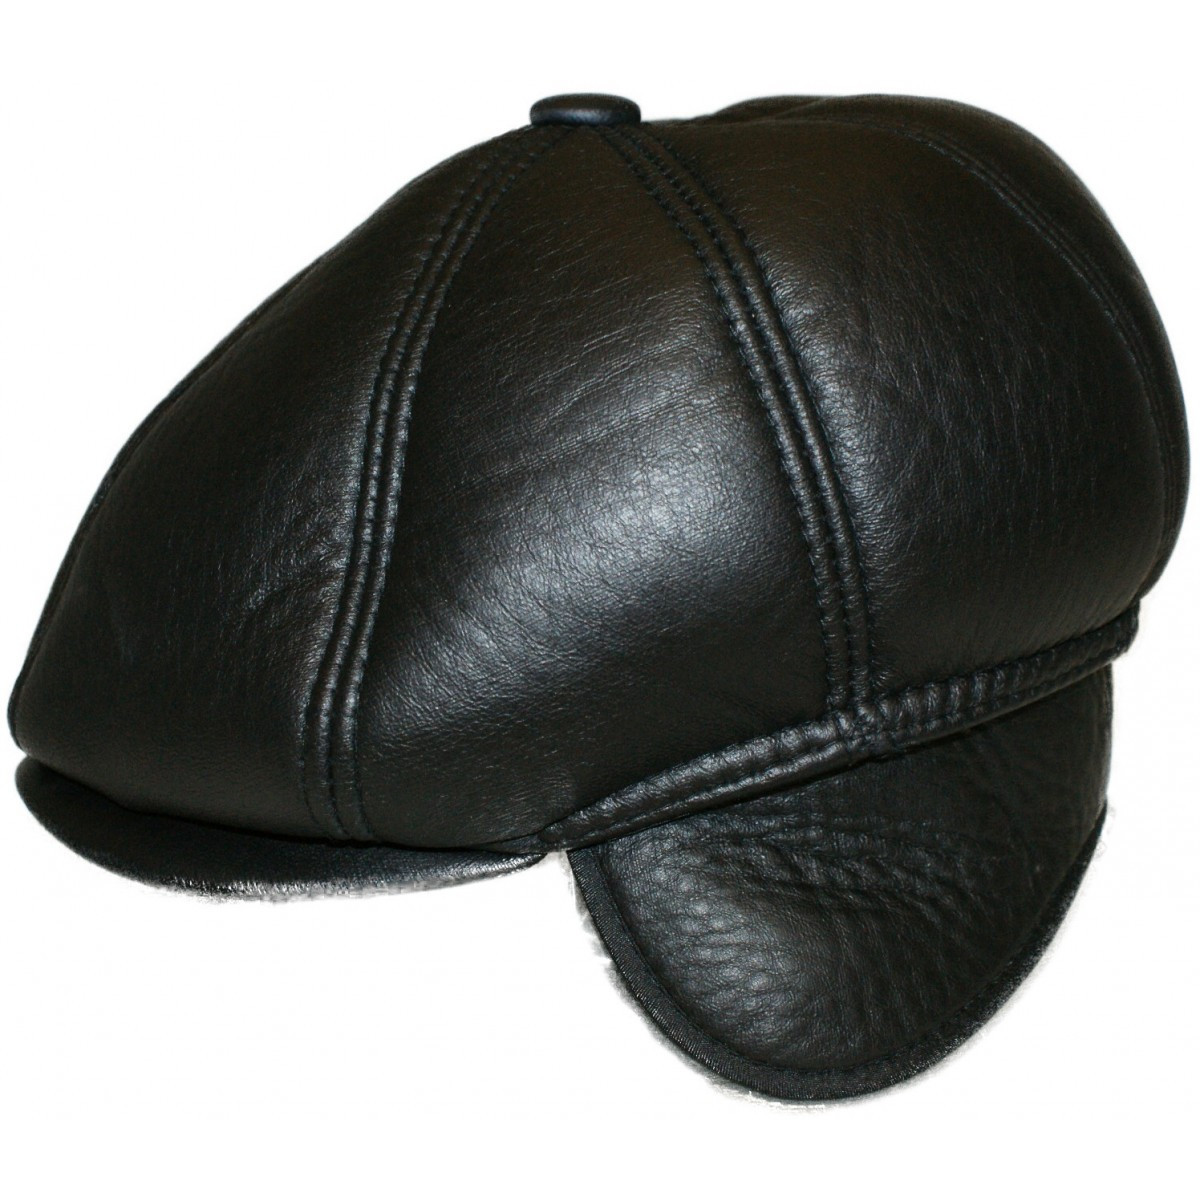 newsboy cap with ear flaps faux leather